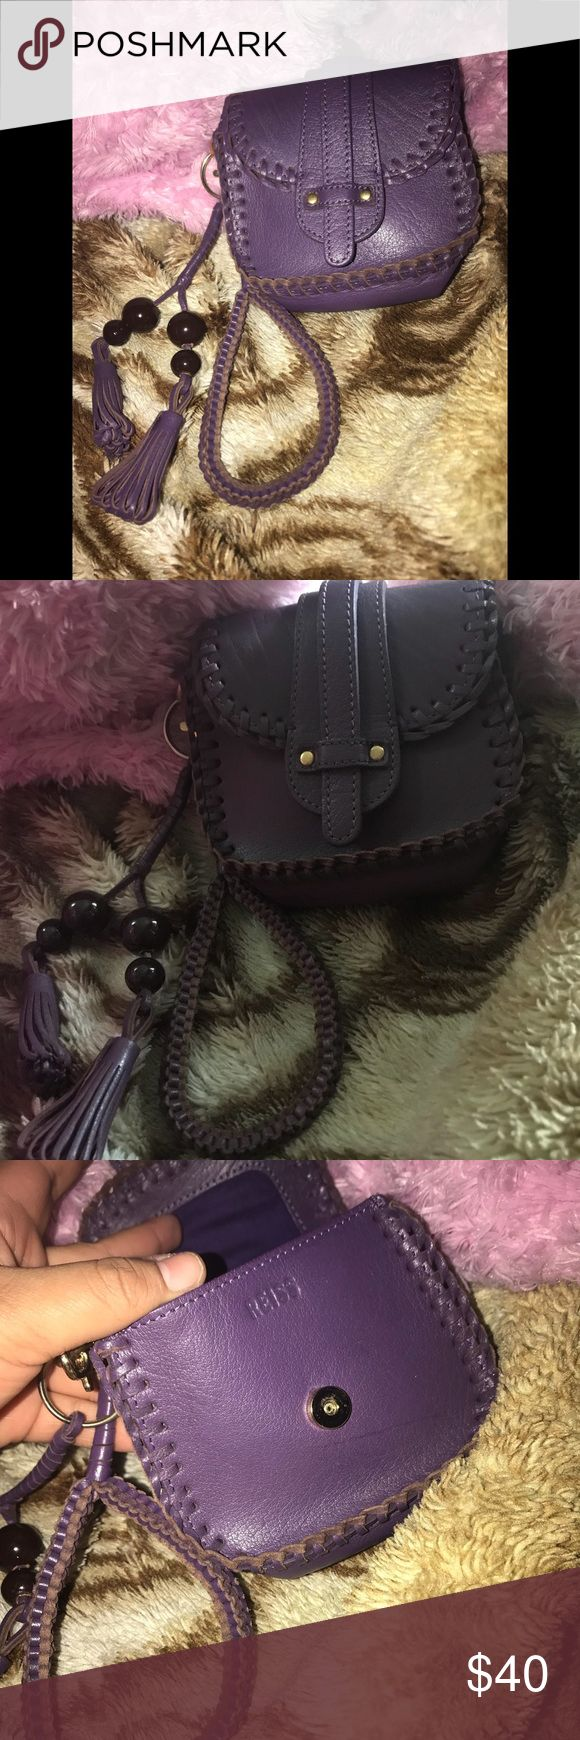 Reiss Wristlet Authentic Small Reiss Wristlet in excellent condition no flaws very cute and chic has a zipper pocket on the inside perfect for your small essentials Reiss Bags Clutches & Wristlets